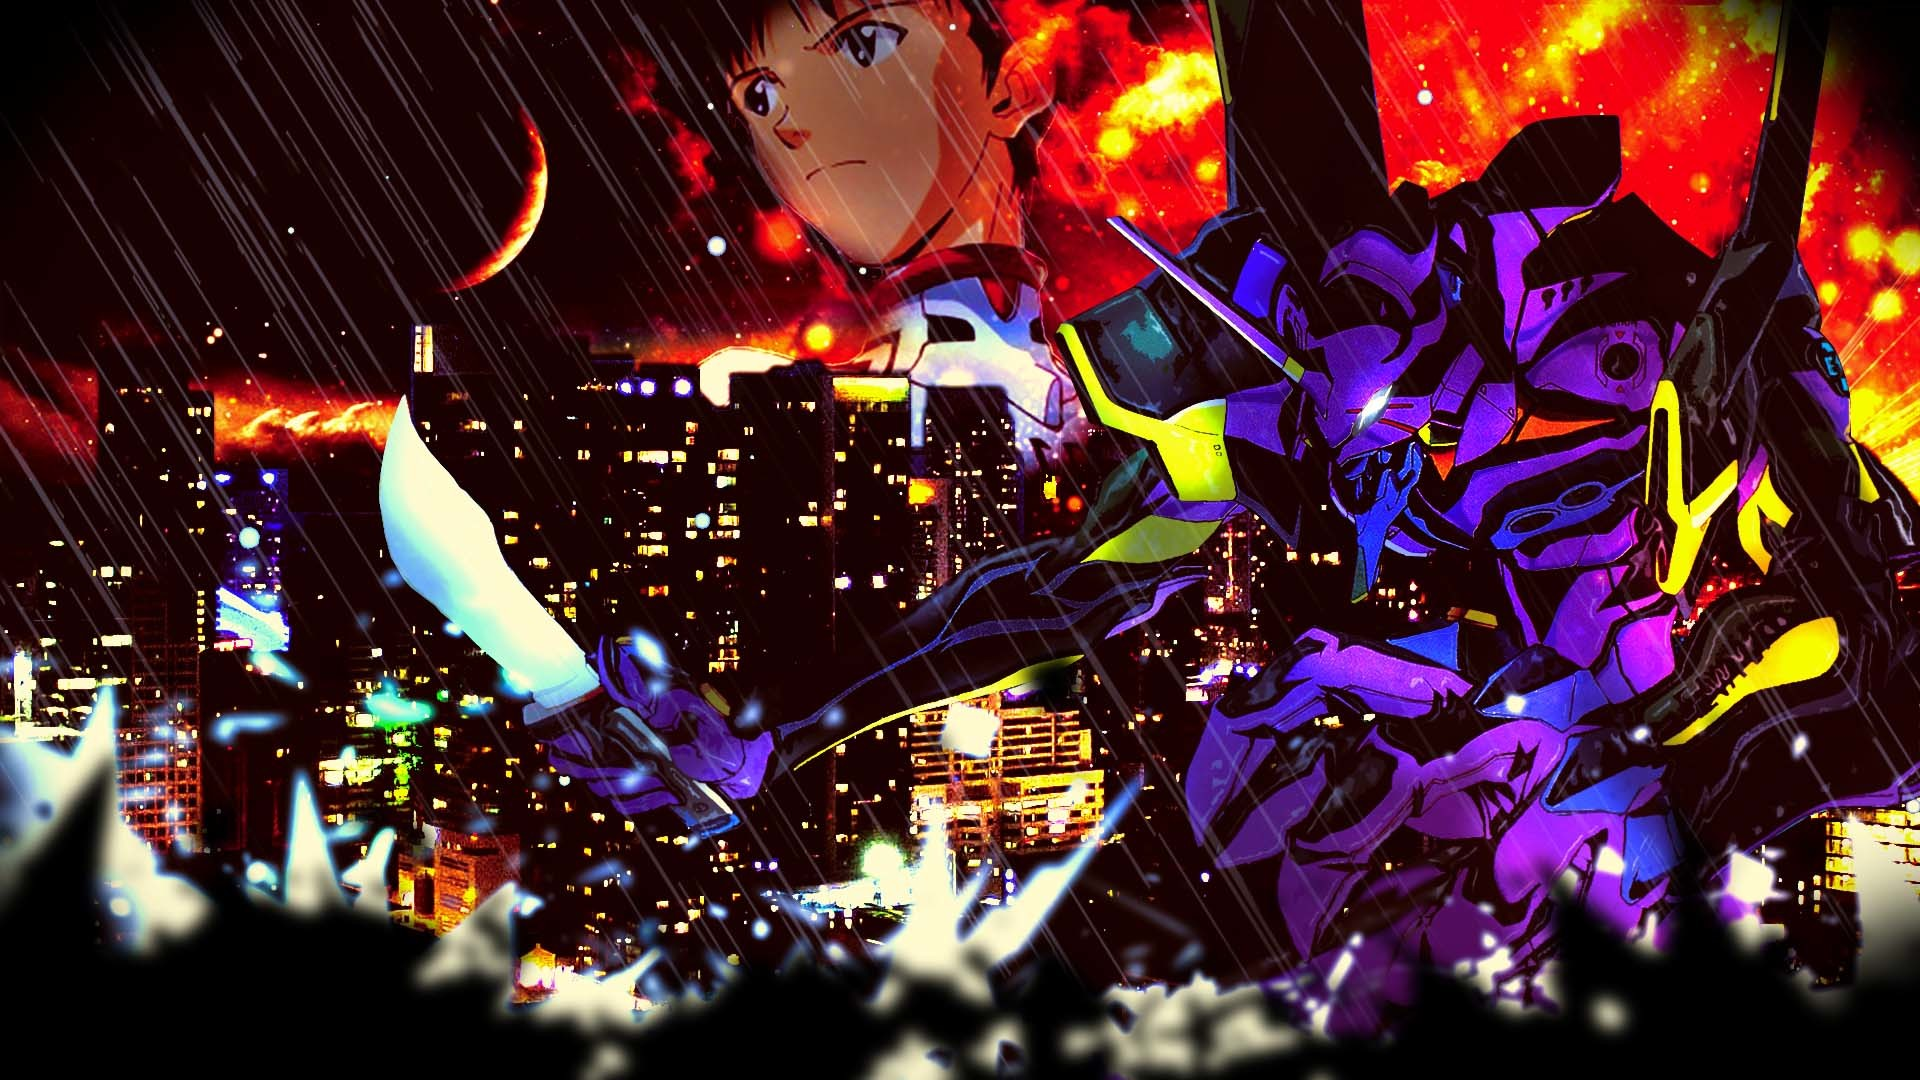 Evangelion Wallpapers (79+ images)